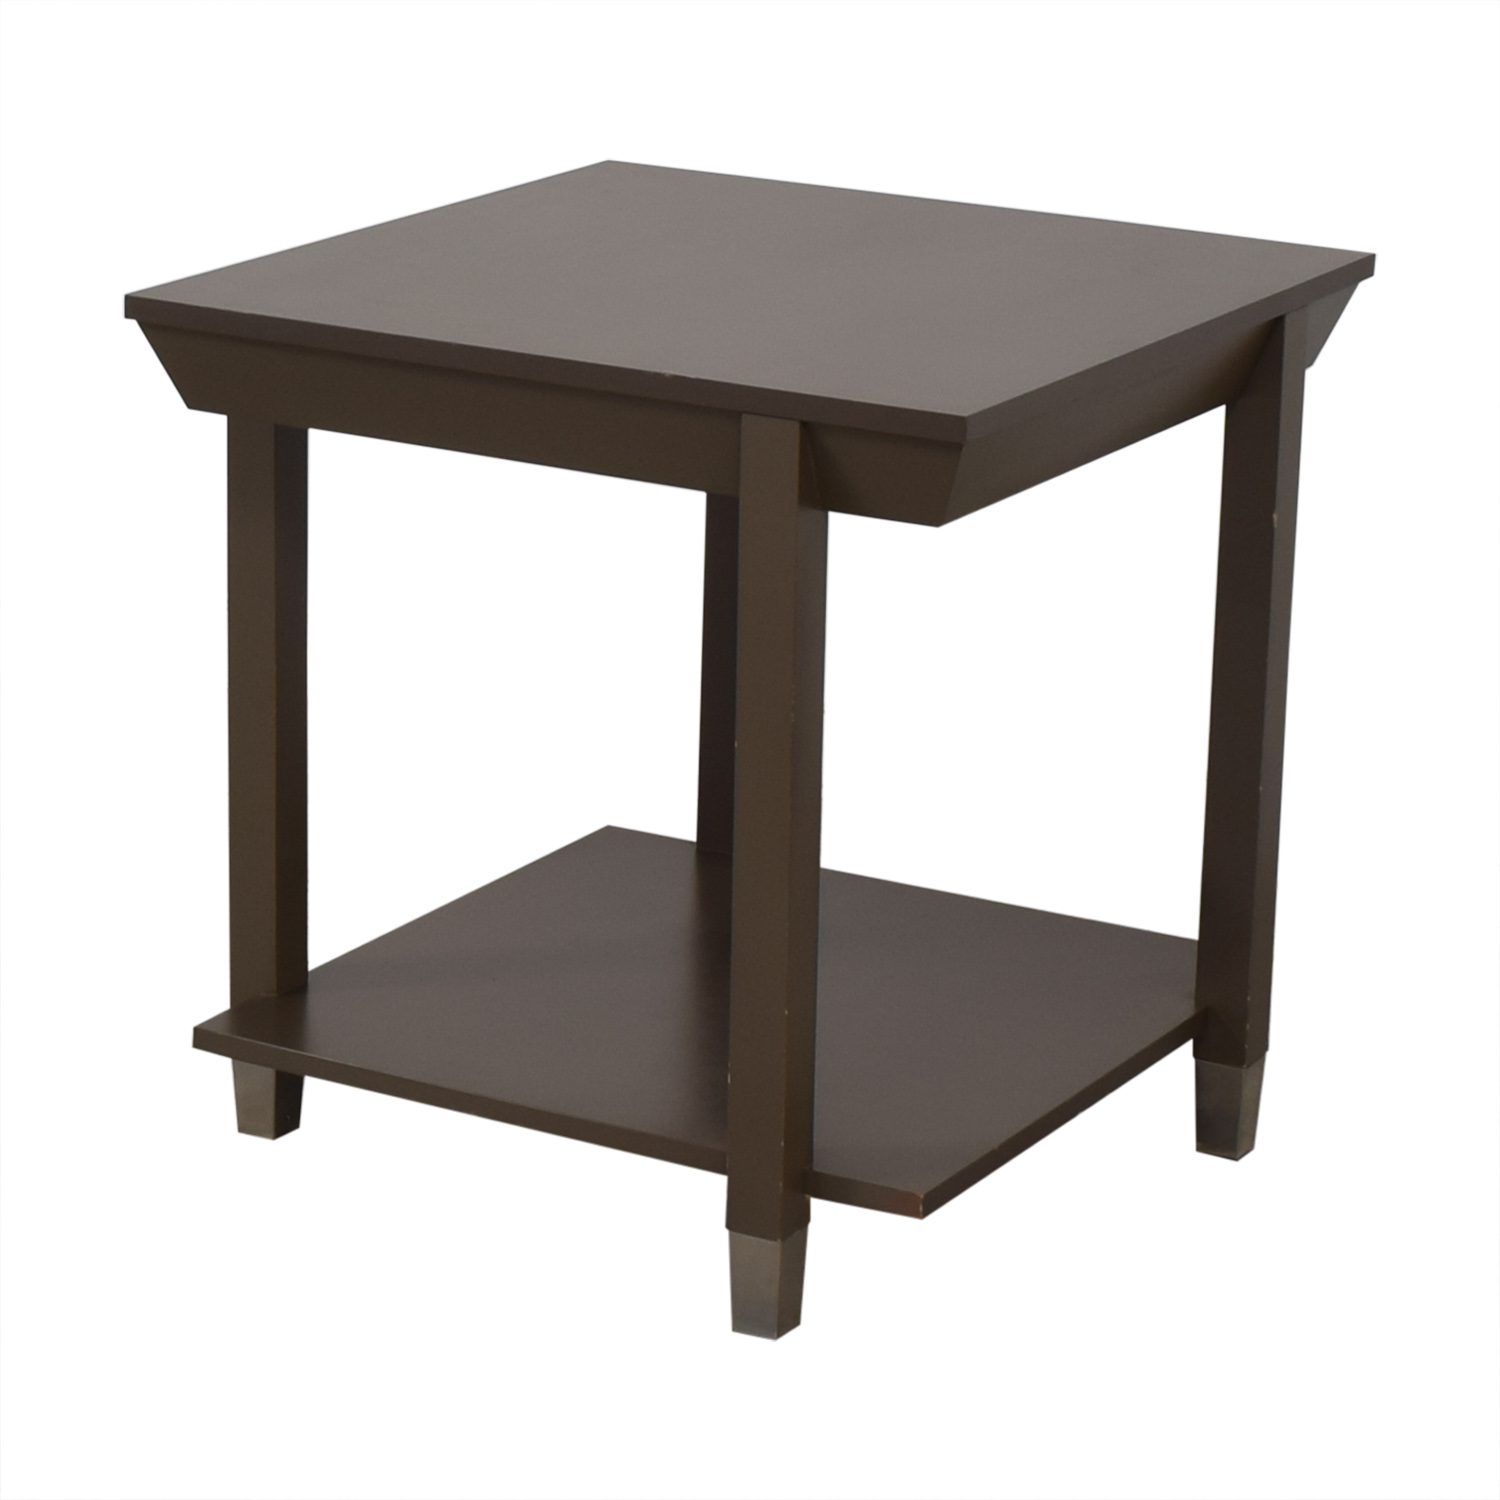 CTH Sherrill Occasional Furniture CTH Sherril Occasional Furniture Square End Table on sale